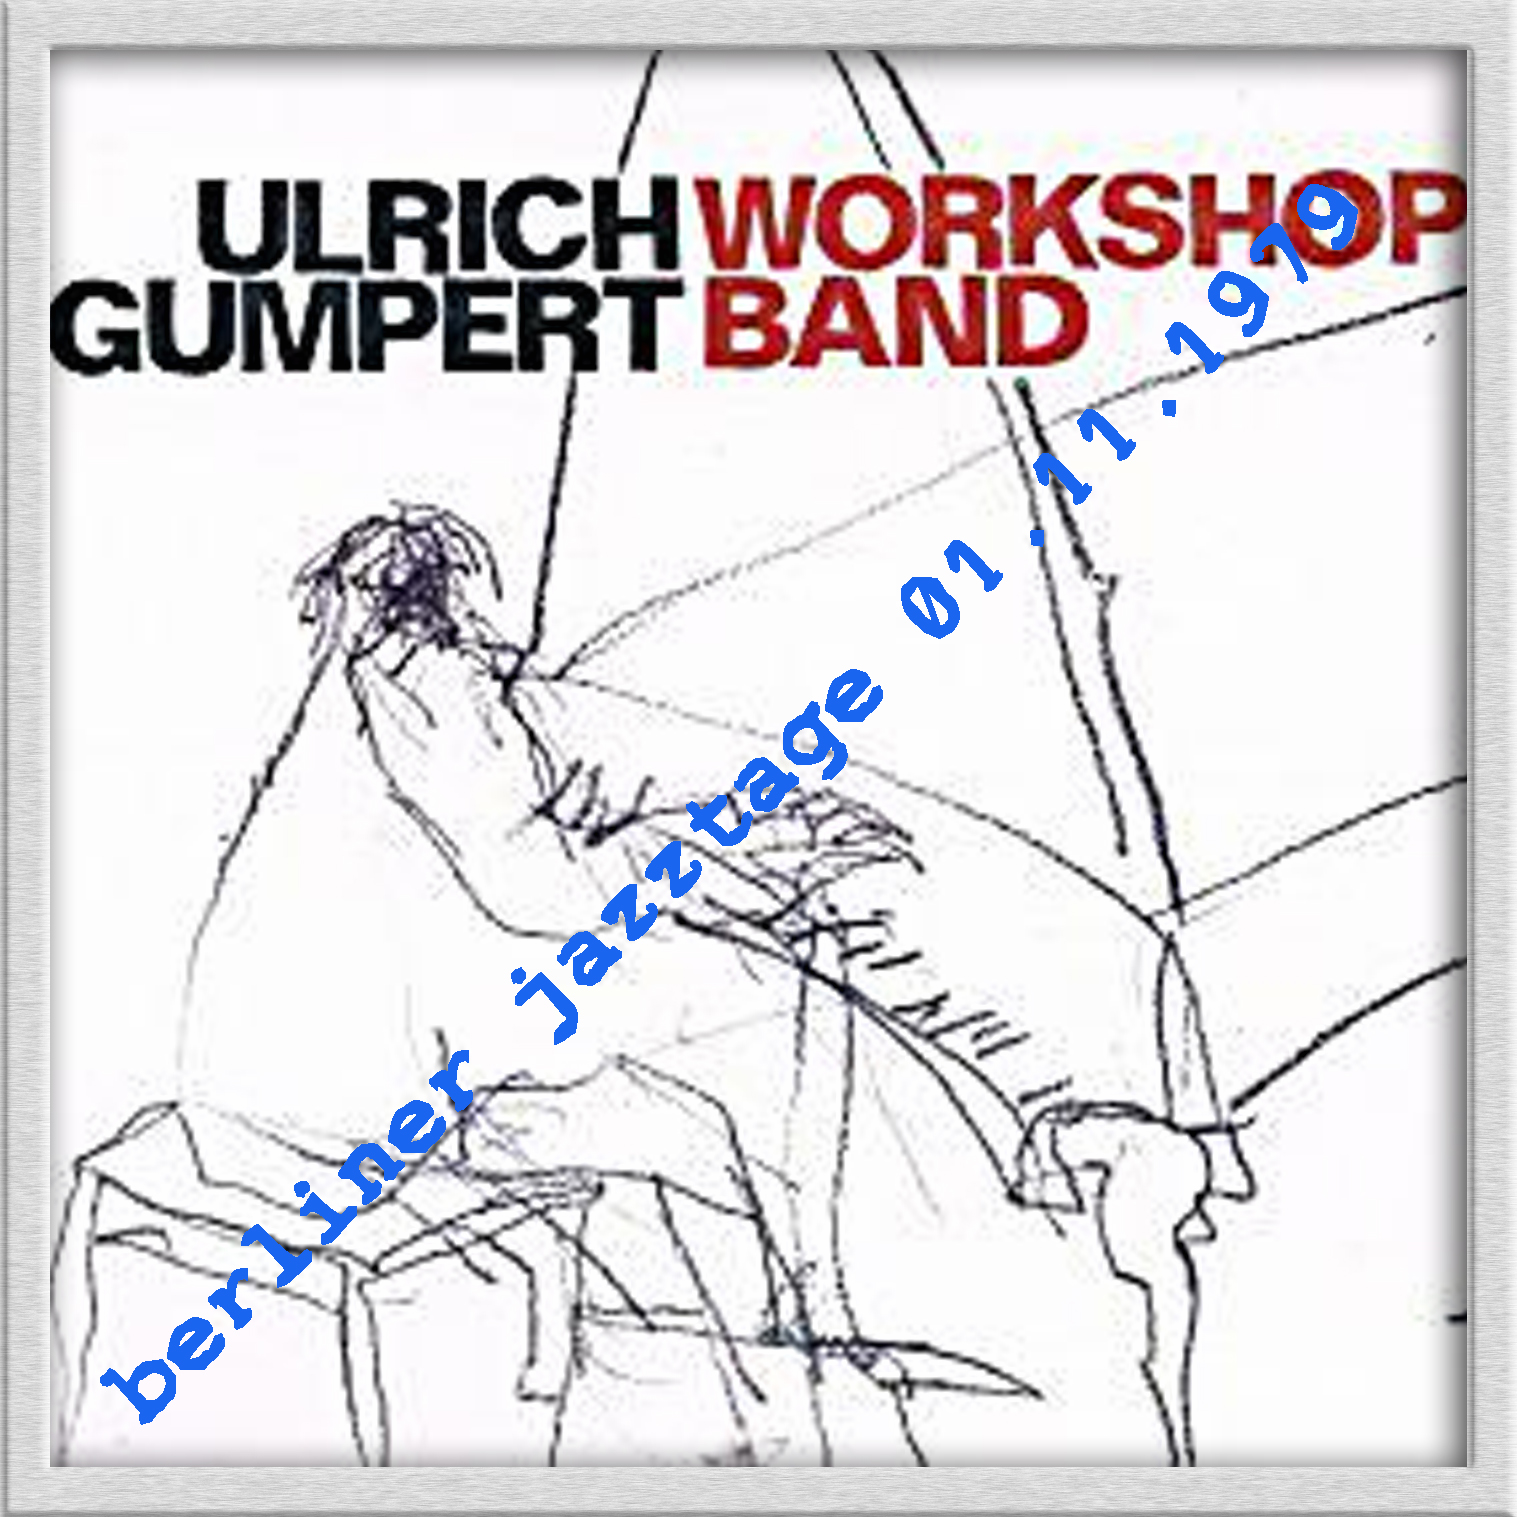 UlrichGumpertWorkshopBand1979-11-01PhilharmonieBerlinGermany (3).jpg